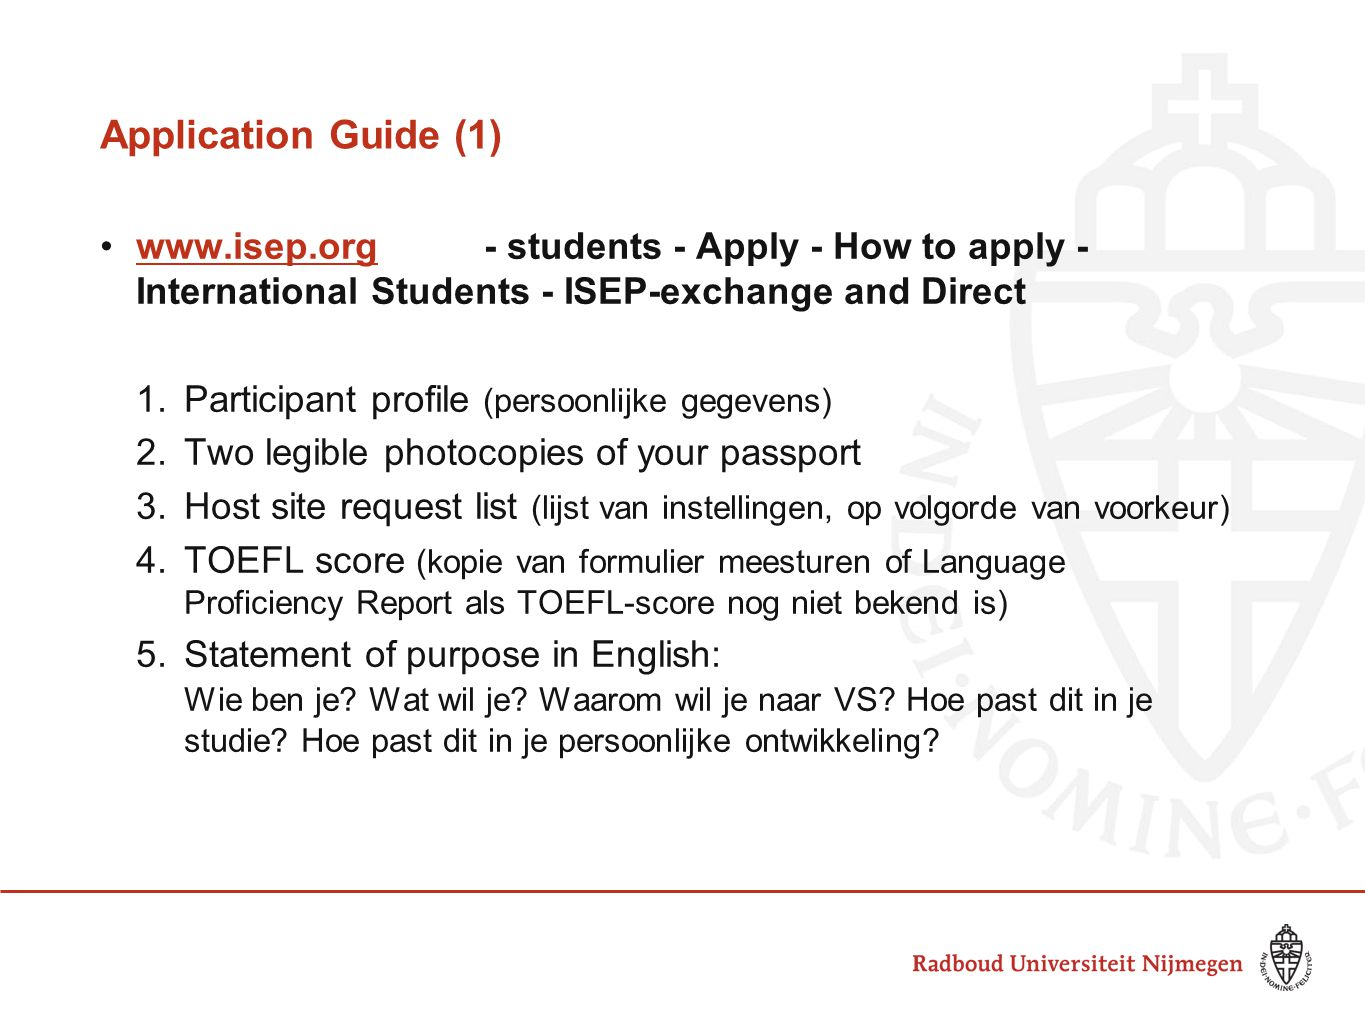 Application Guide (1)   - students - Apply - How to apply - International Students - ISEP-exchange and Direct.